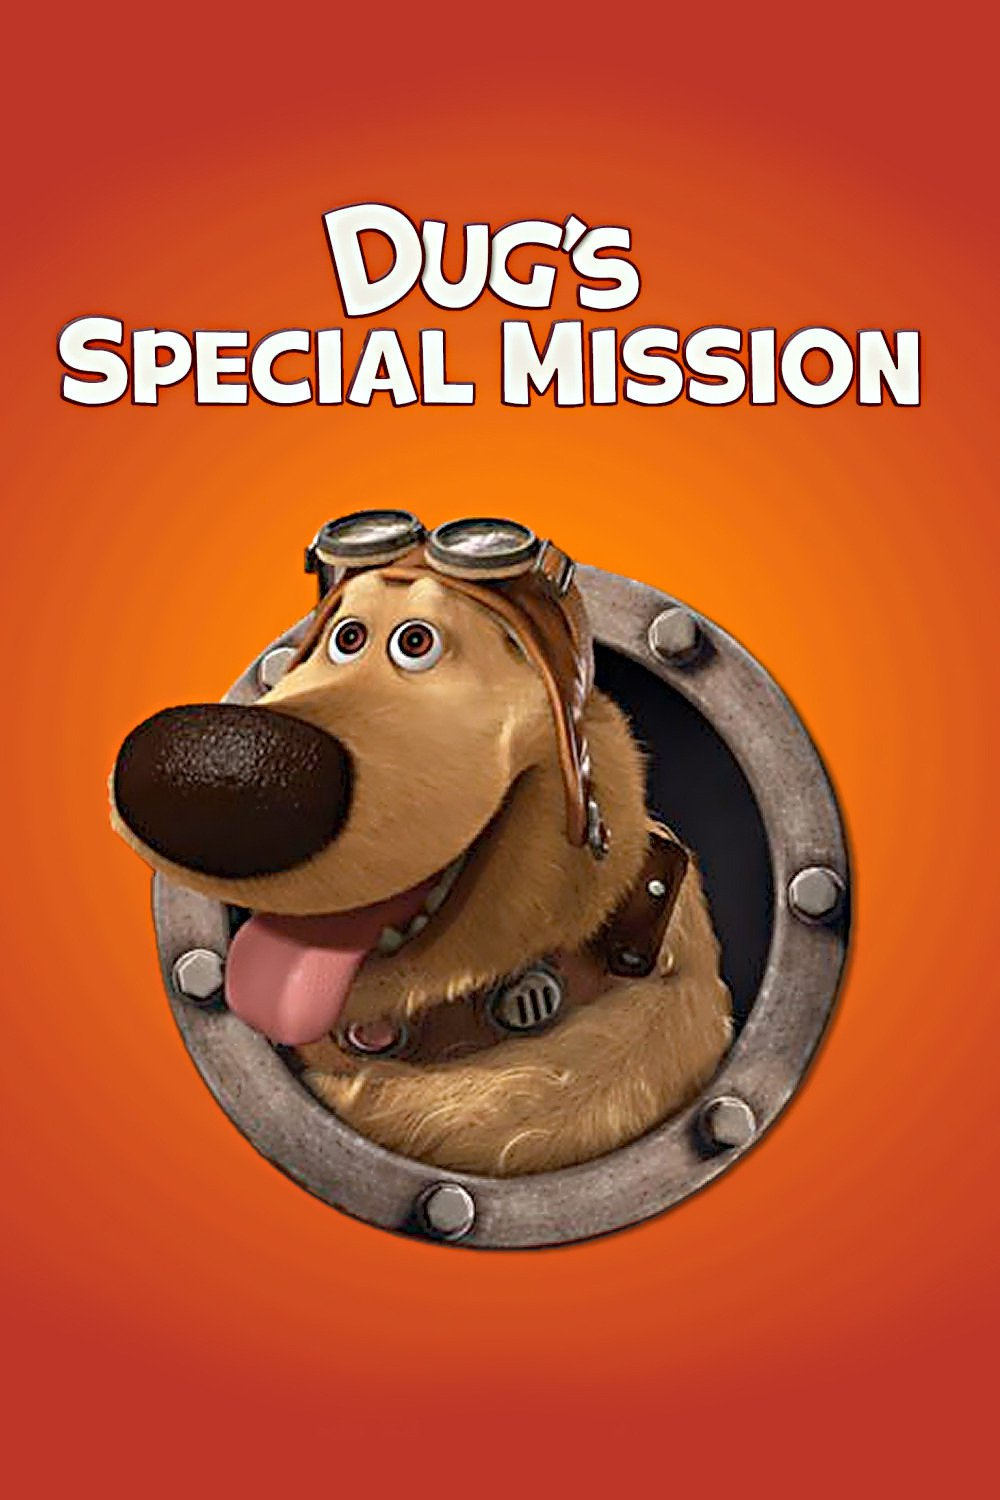 affiche-dug-mission-speciale.jpg